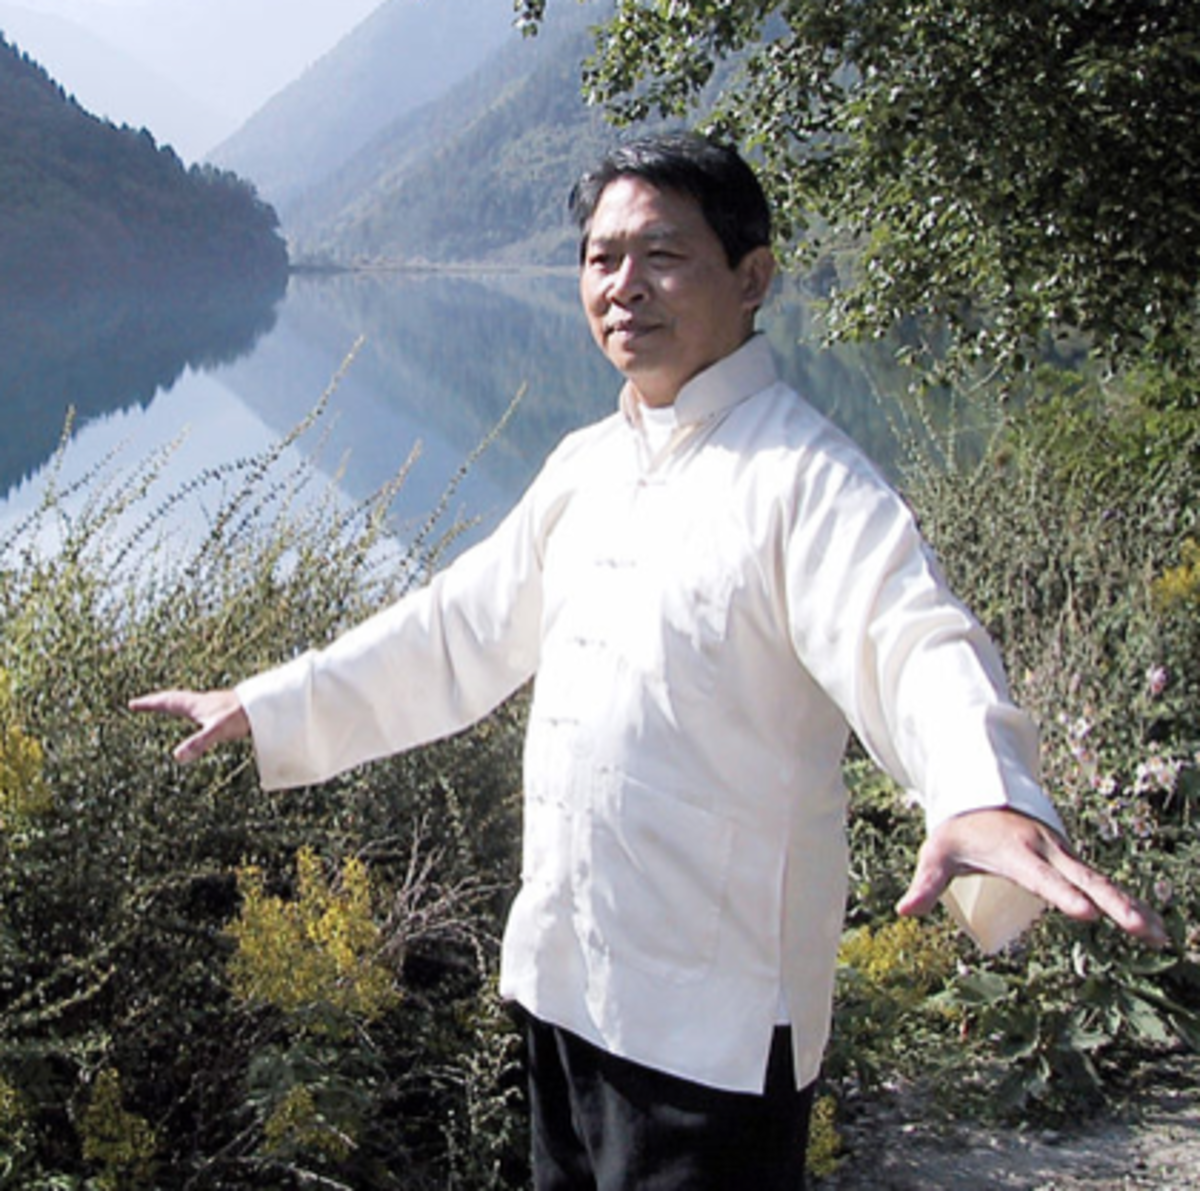 Master Lam Kam Chuen enthusiastically teaches standing qigong (zhan zhuang) and Ba Duan Jin and has published videos and books.